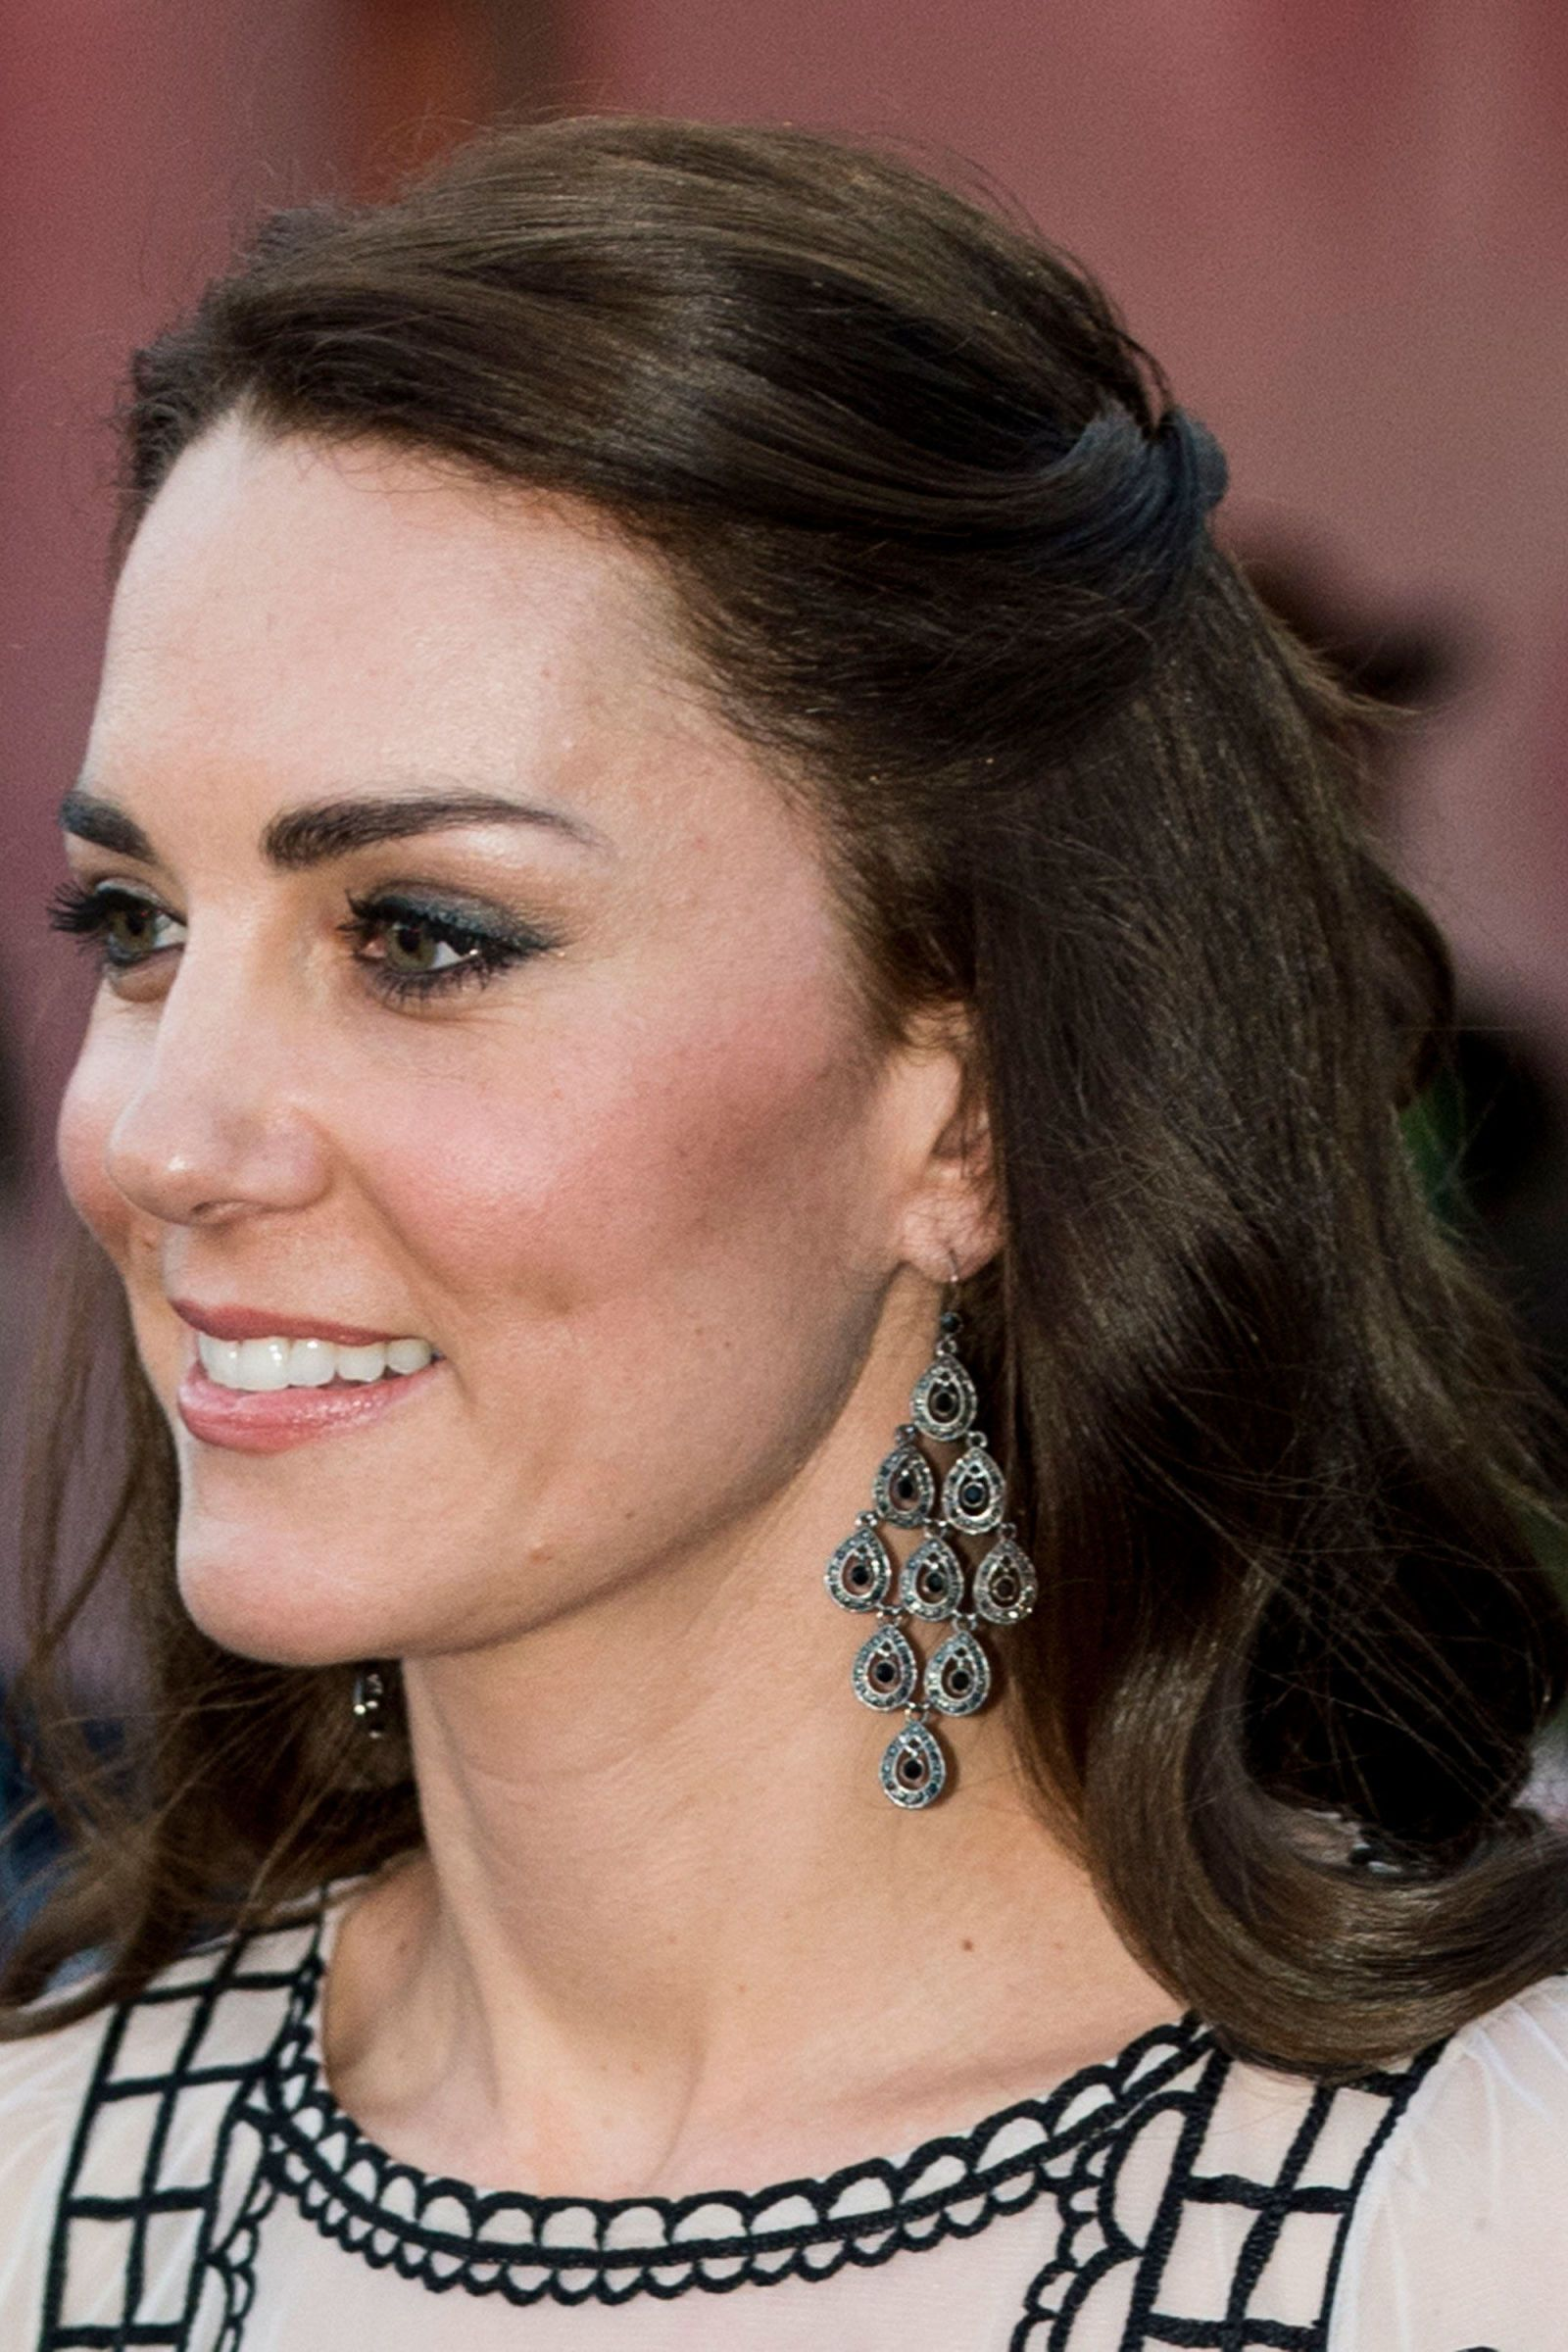 How to keep your hair frizz-free and glossy like the #DuchessofCambridge in Bhutan #BeautyMuse #BazaarLoves #HairTips #RoyalTour